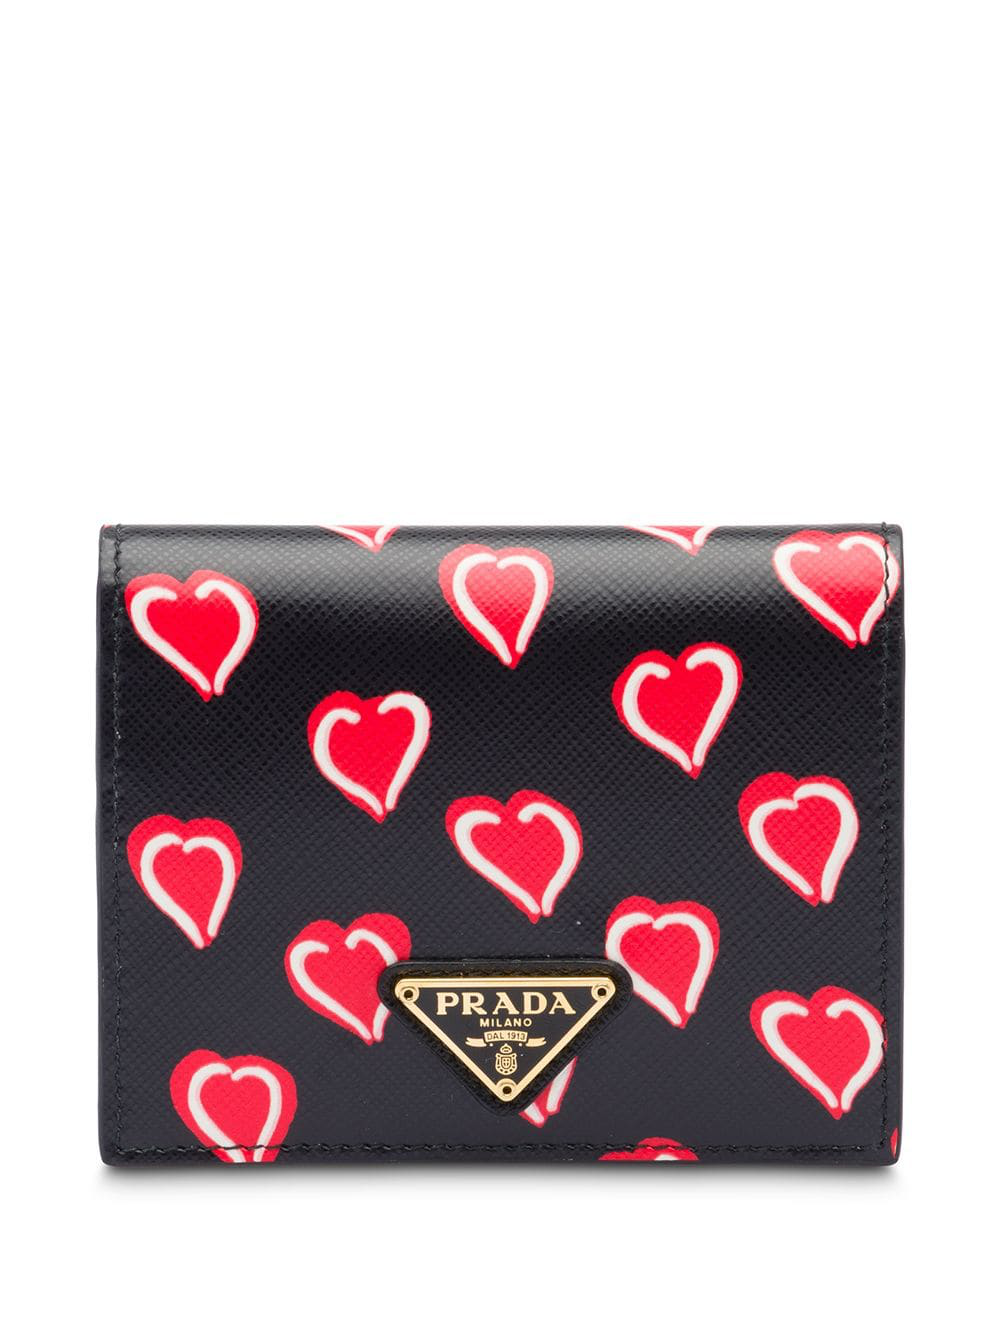 2ba9f78da30df2 Prada Small Saffiano Leather Wallet - Black In F0Yqx Black Hearts  Motif/Fiery Red